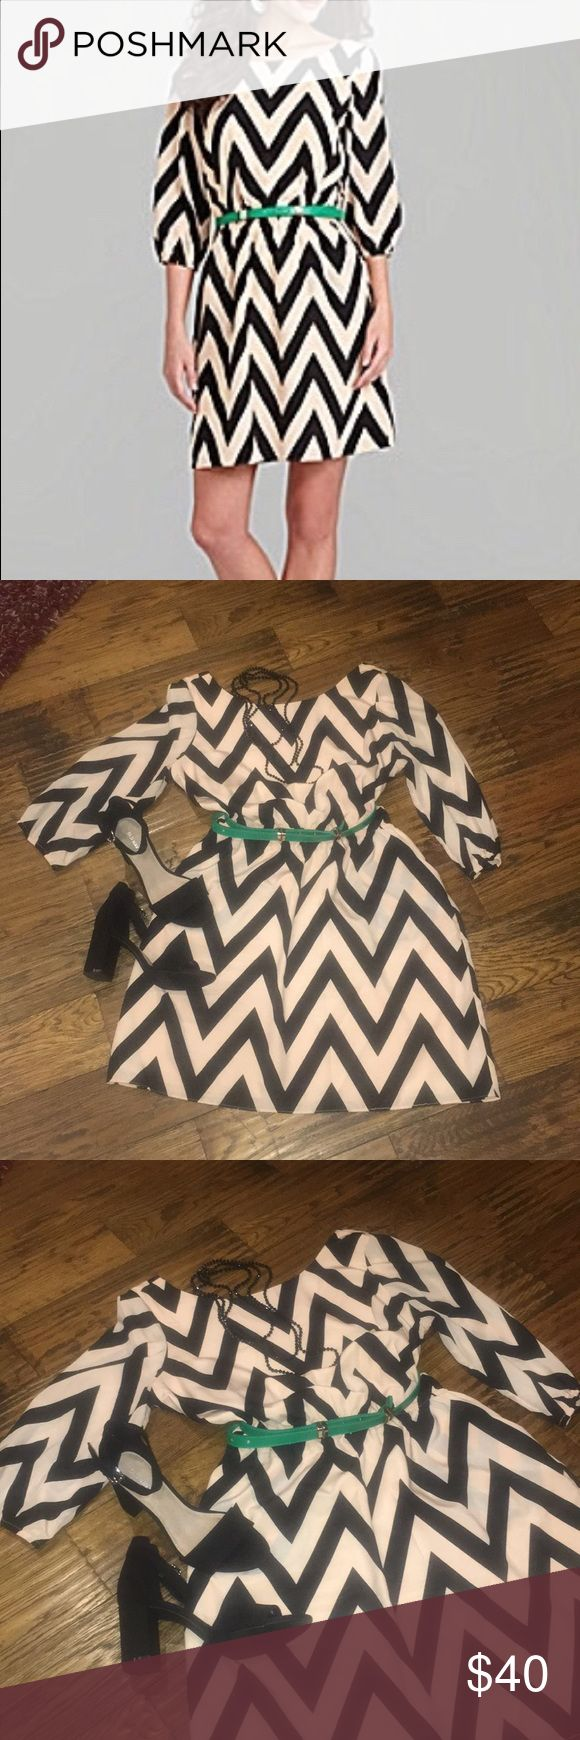 Gianna Bini Chevron Print Dress Size-Large Gianni Bini Chevron Print Dress with three quarter length sleeves.  Dress has an elastic waist and side pockets on the skirt.  Green belt is included.  Dress is in very good condition.  Size -Large Gianni Bini Dresses